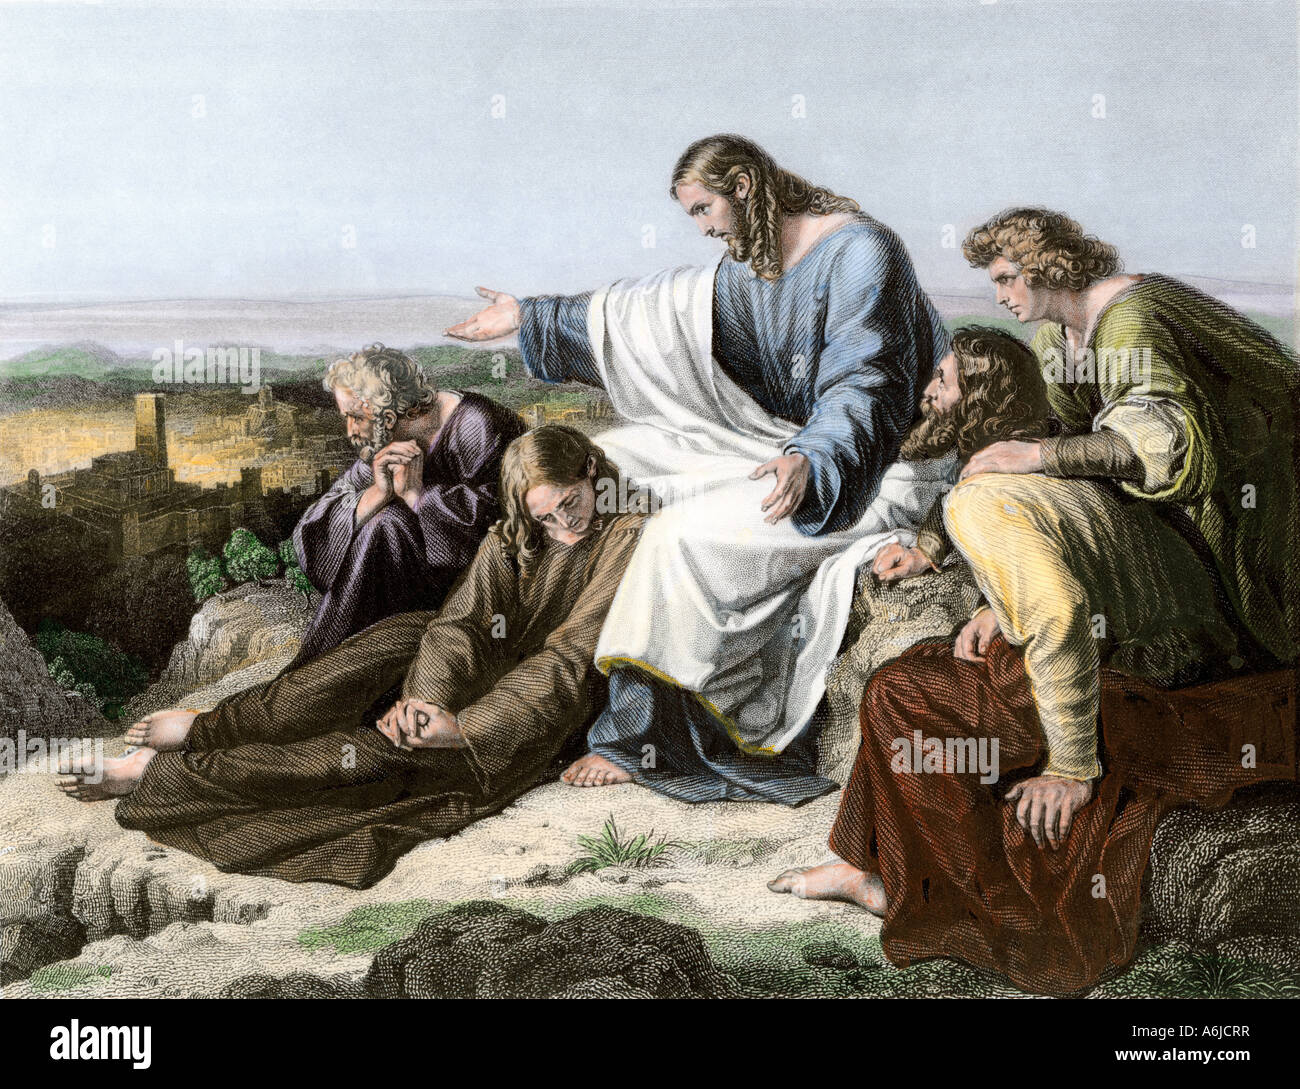 Jesus lamenting the fate of Jerusalem. Hand-colored engraving - Stock Image